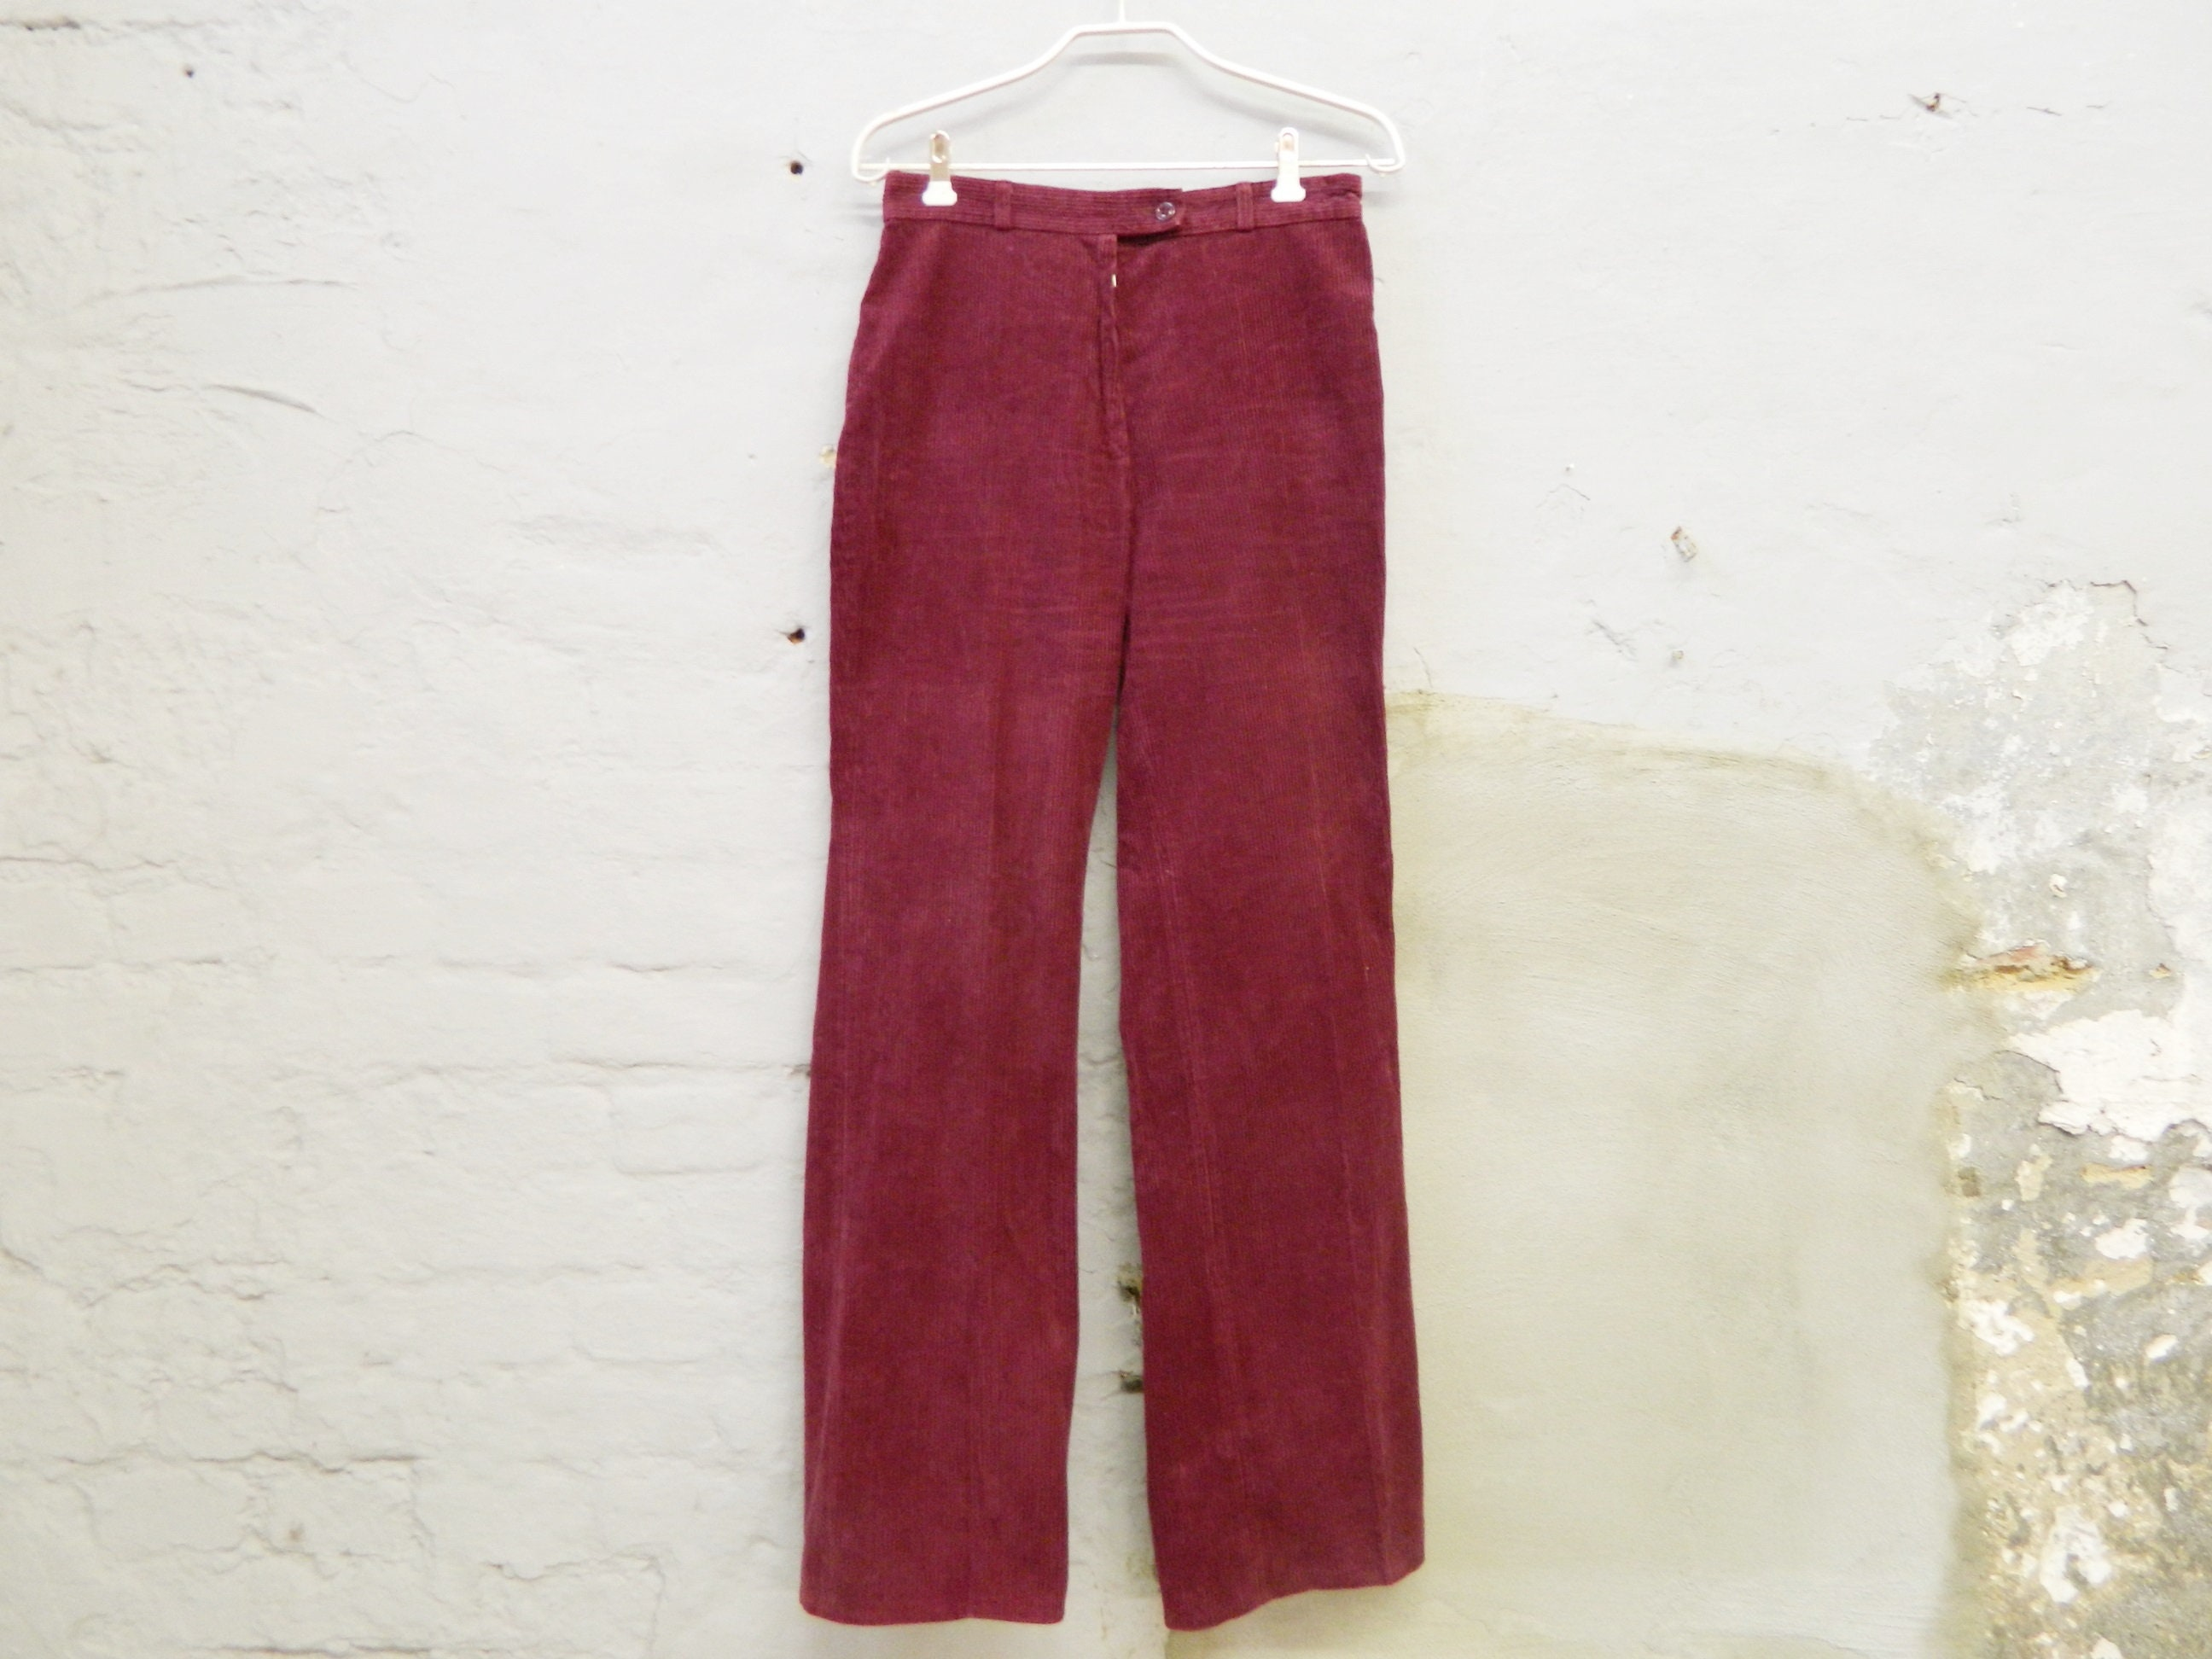 70s Corduroys Pants Cord Pant Trousers With Punch Red